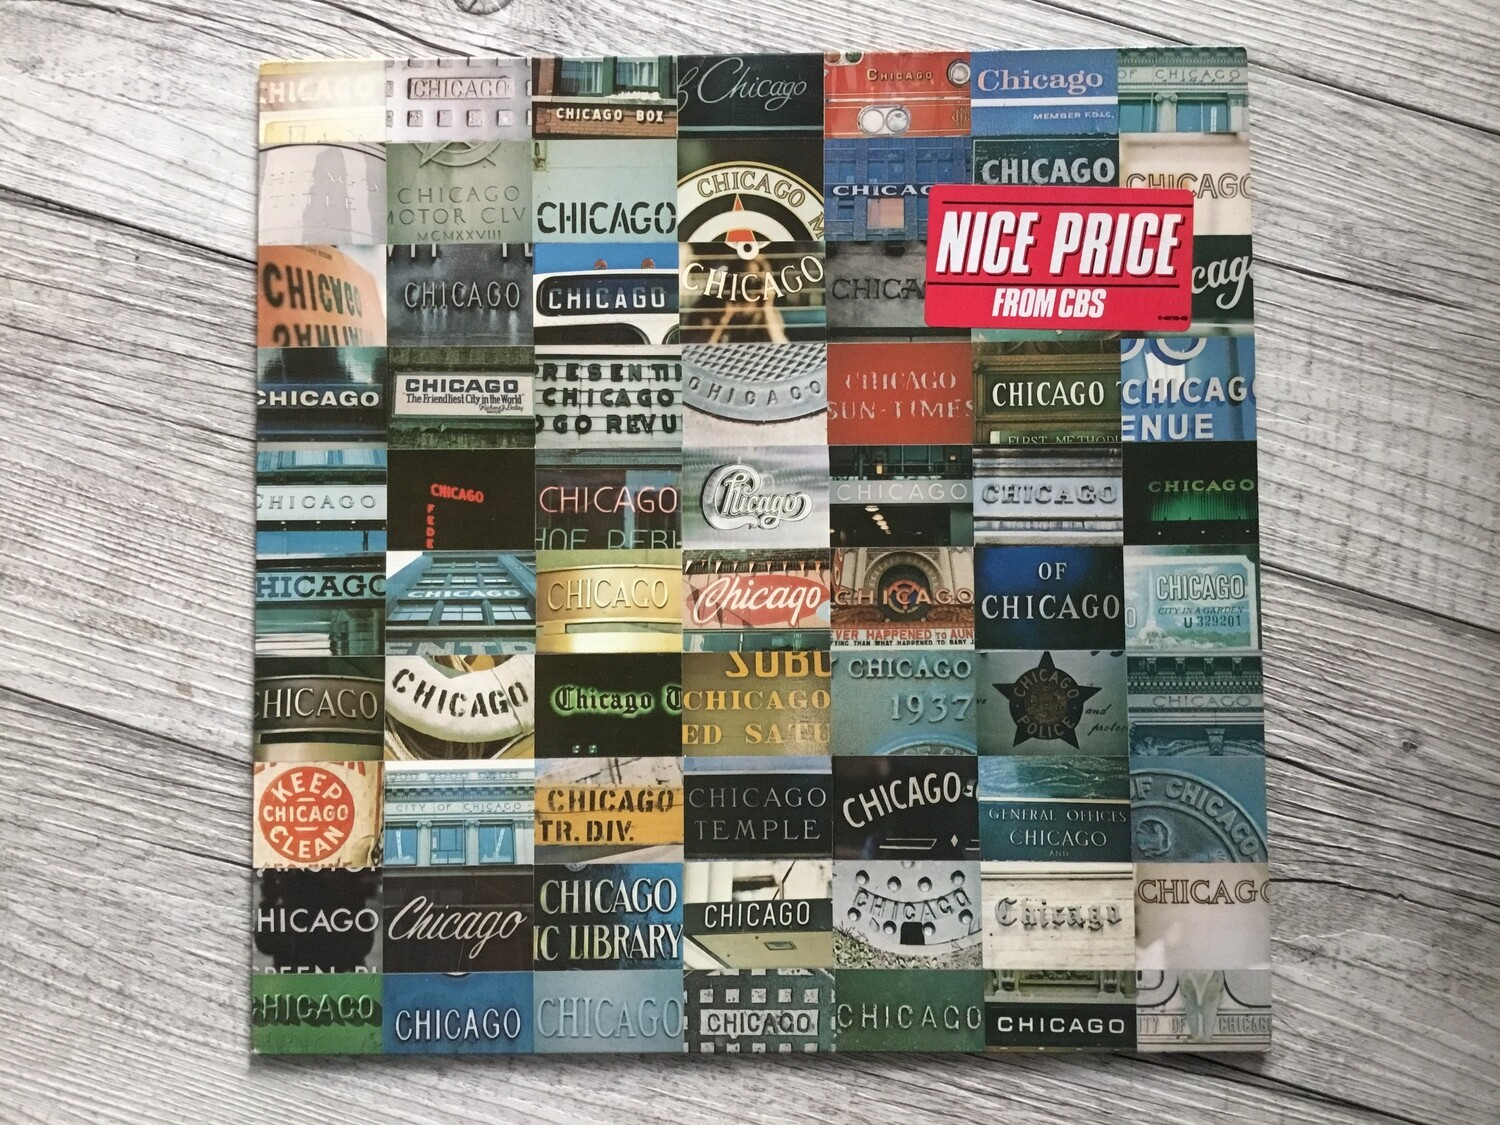 CHICAGO - Greatest Hits Vol. 2